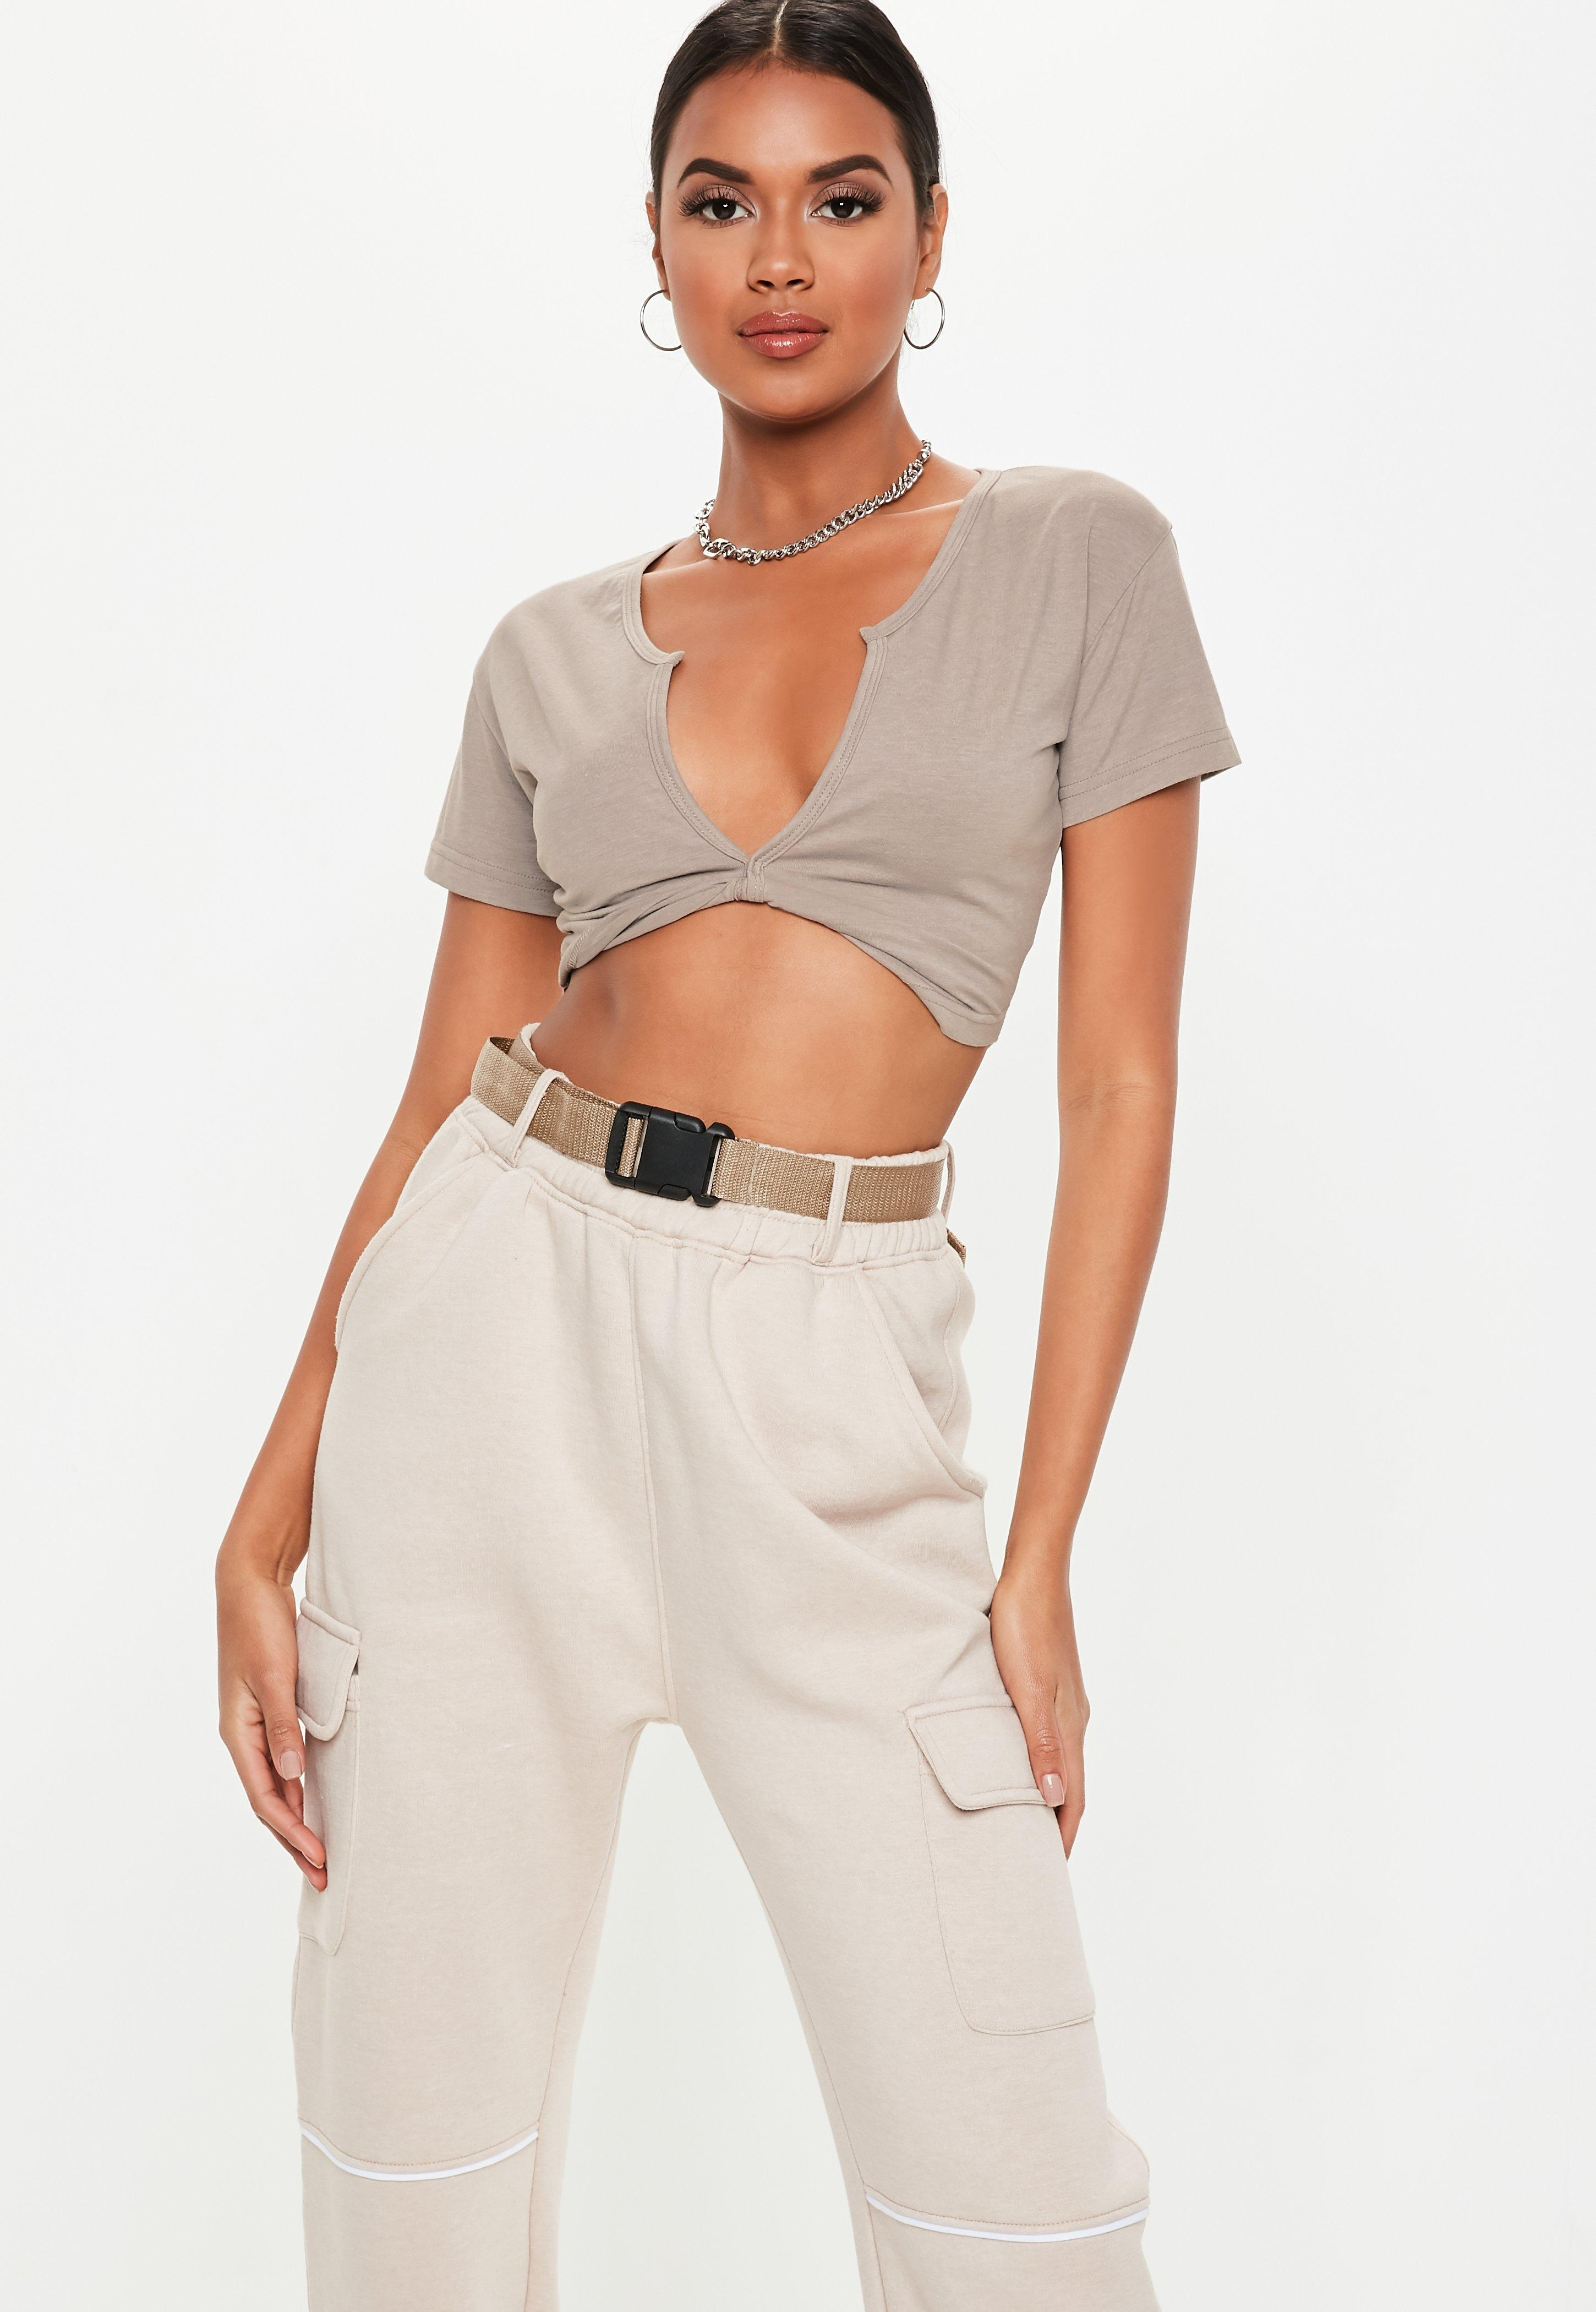 3058ed646cefe Low Cut Tops | Plunge & Deep V Tops - Missguided